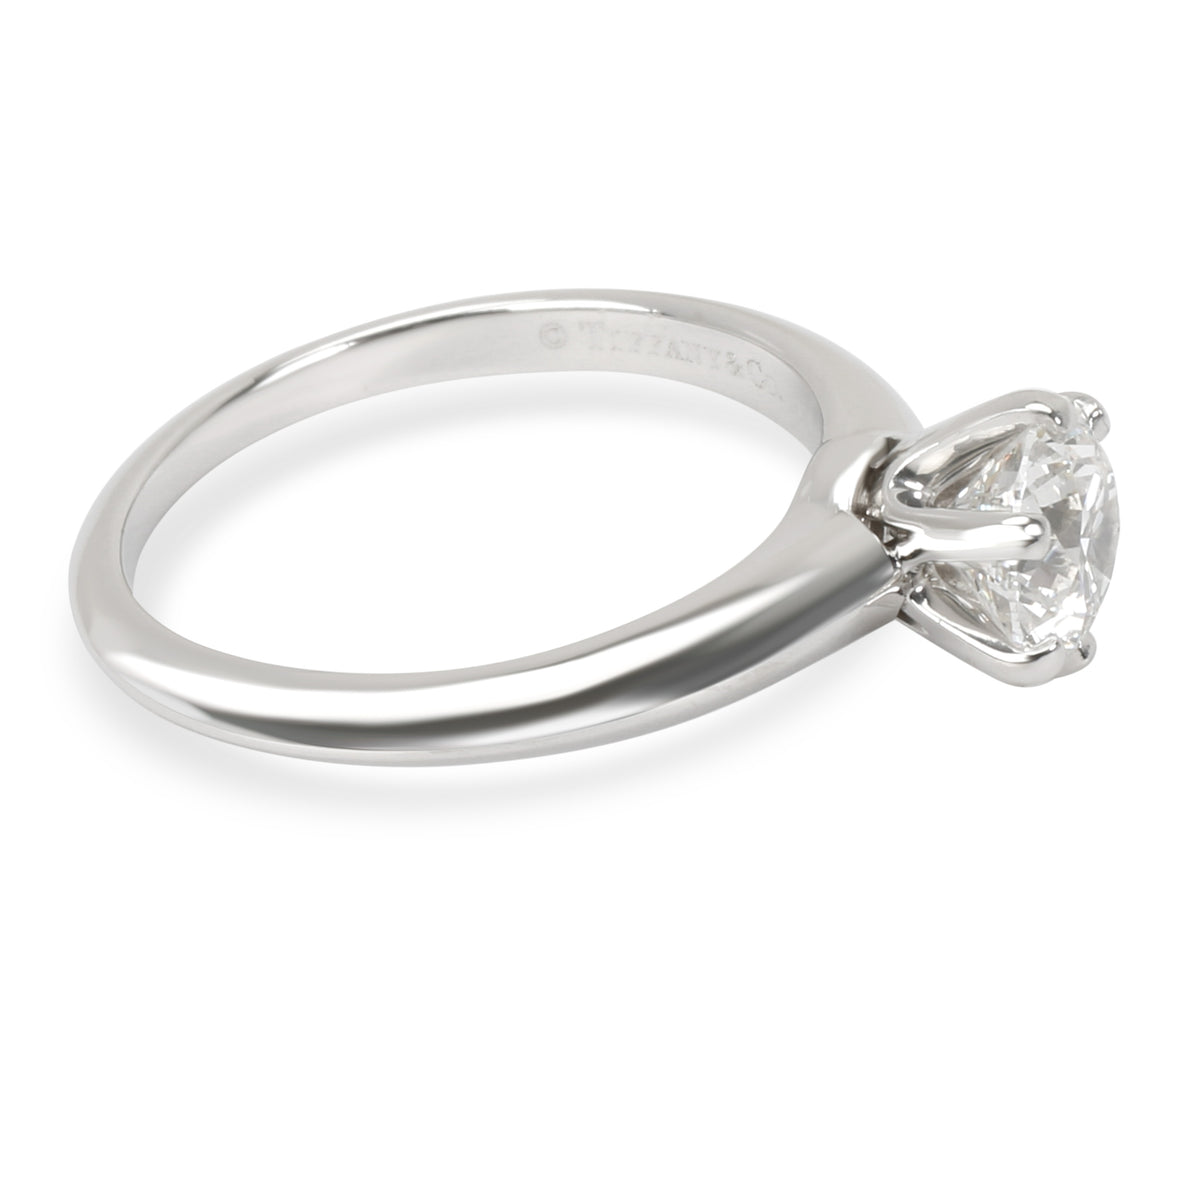 Tiffany & Co. Diamond Engagement Ring in Platinum (0.91 ct F/VS1)